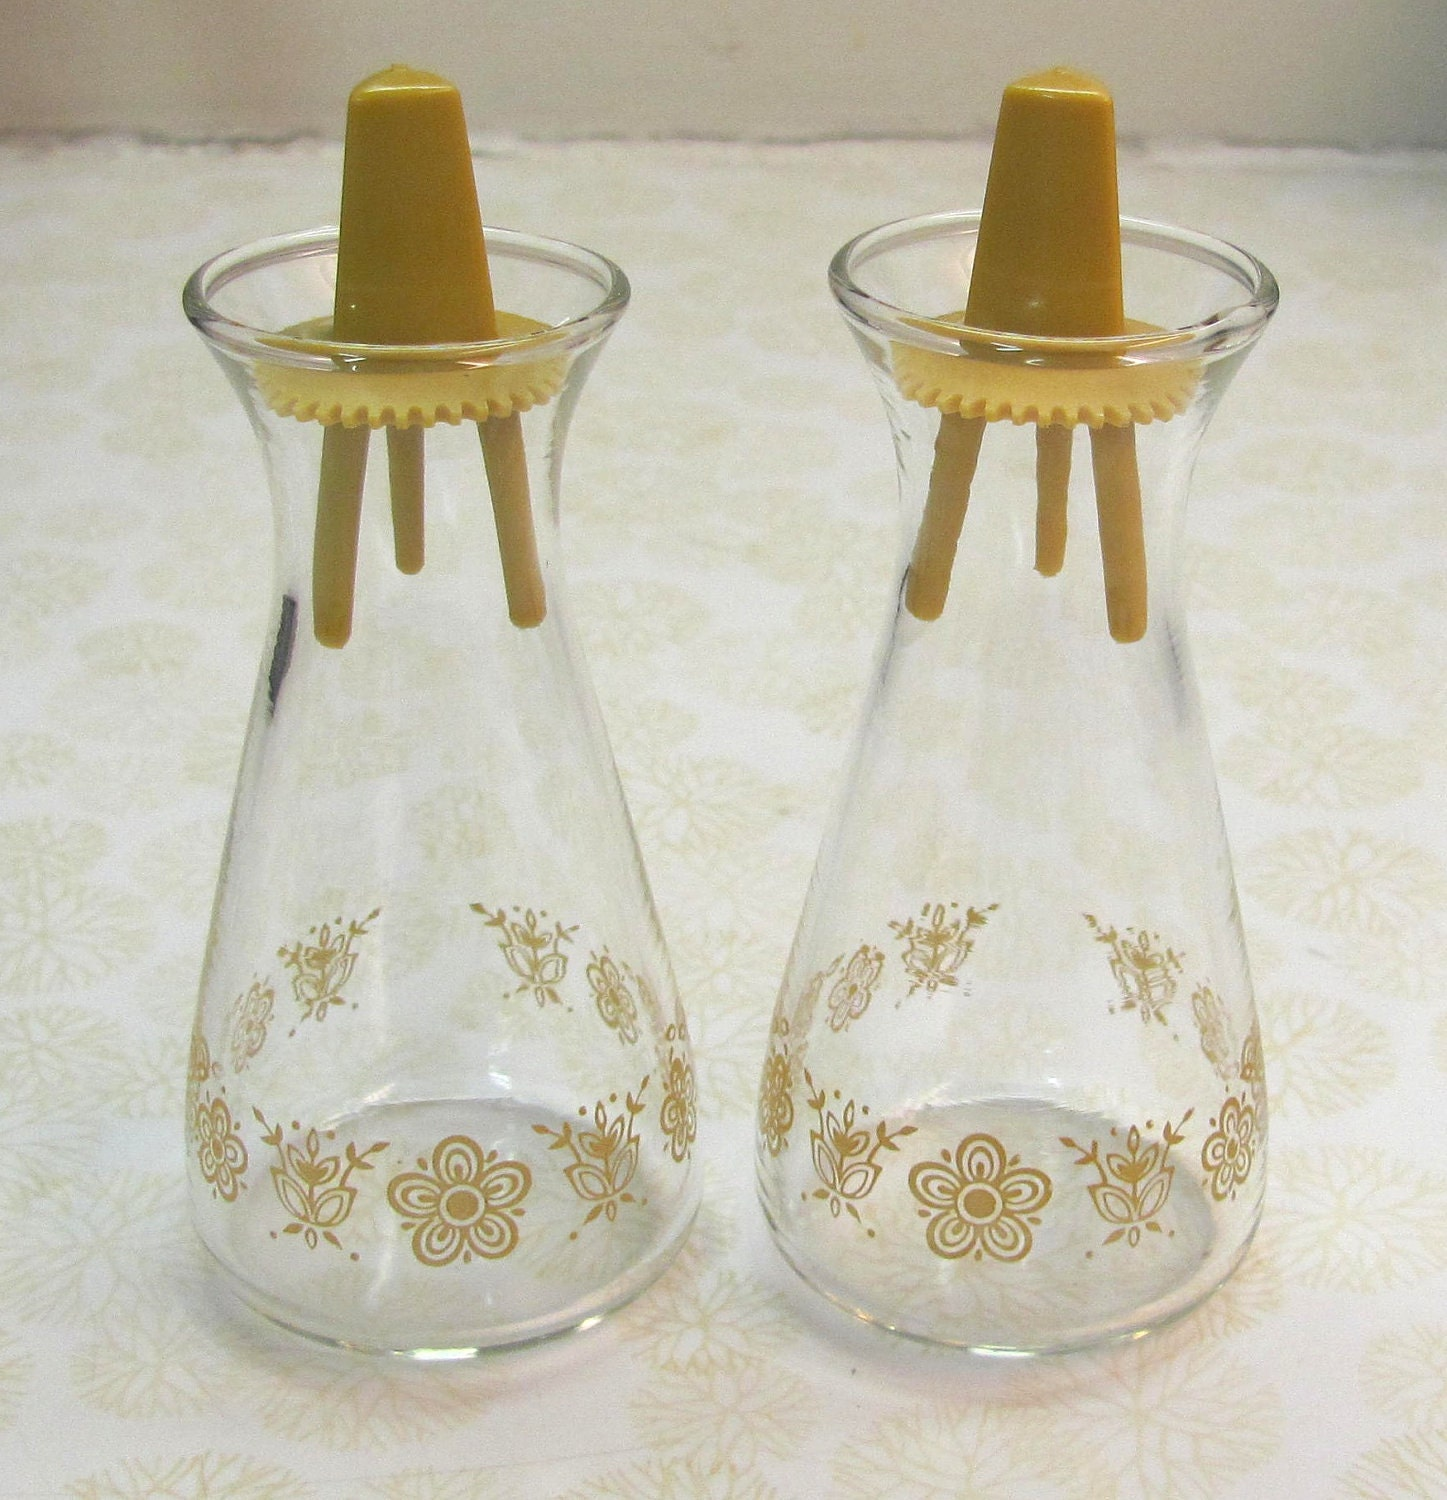 Vintage Butterfly Gold Pyrex Corelle Salt And Pepper Shakers